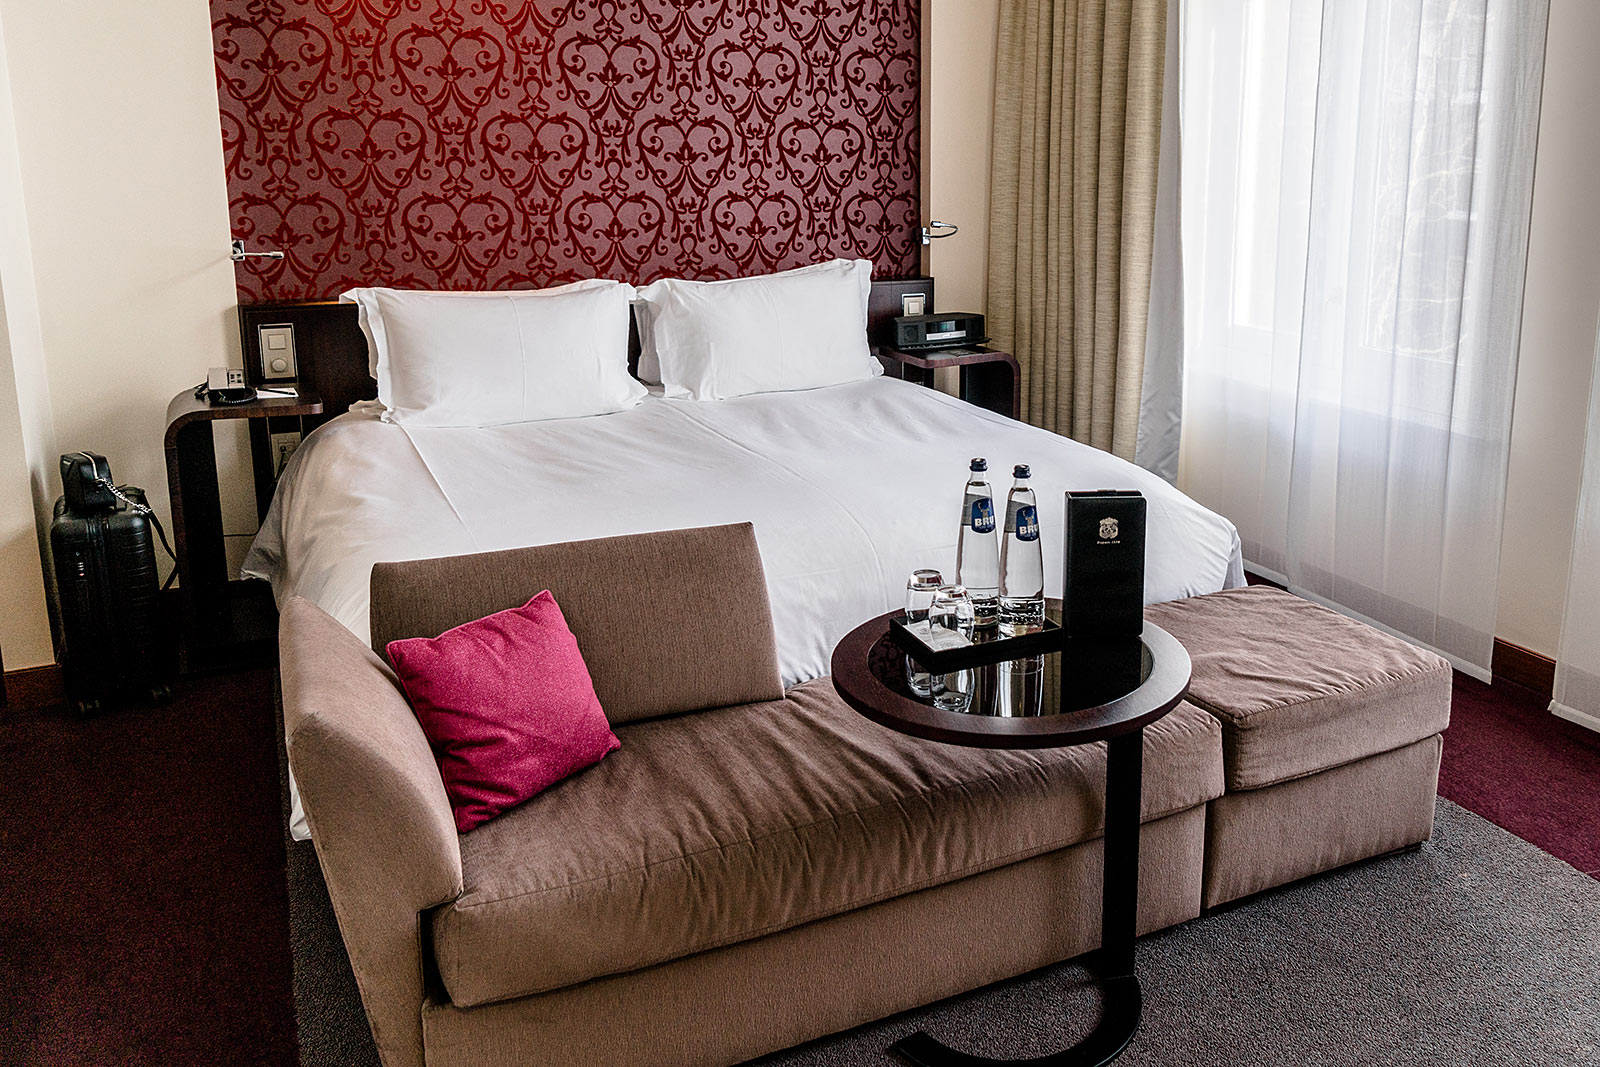 hotel amsterdam sofitel the grand bett travel blog sunnyinga